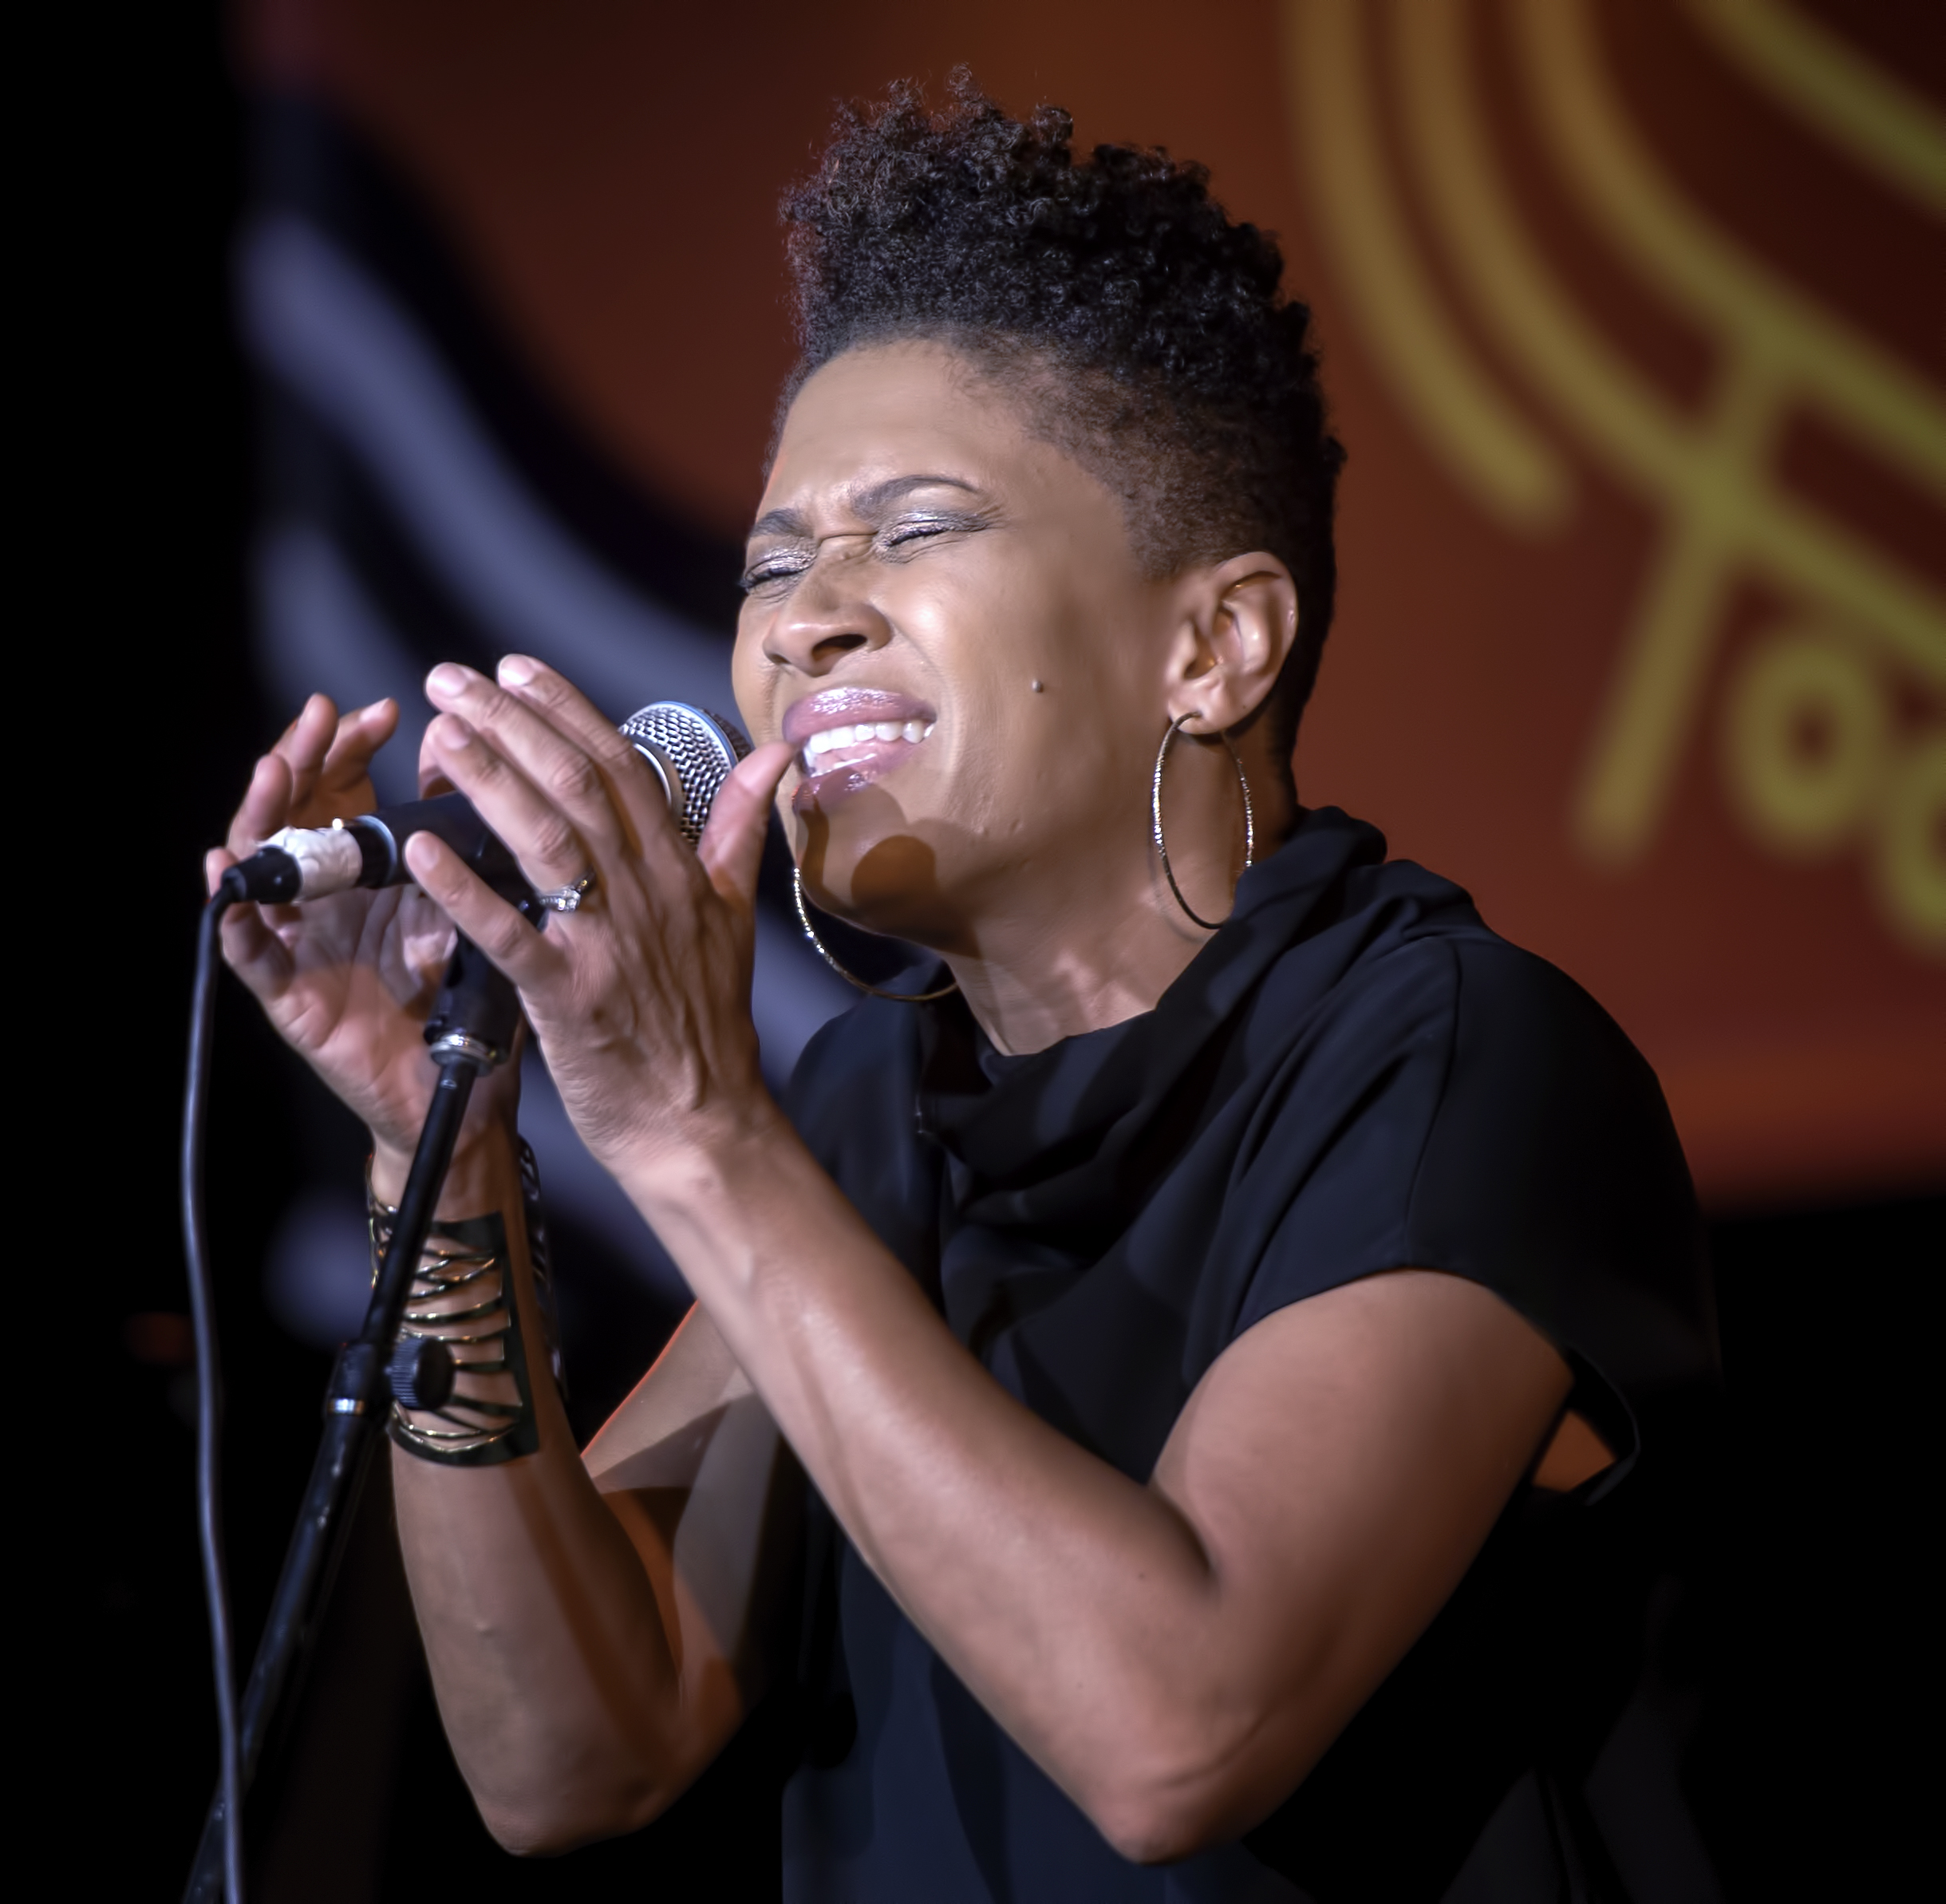 Jean Baylor with the Baylor Project at the Monterey Jazz Festival 2018